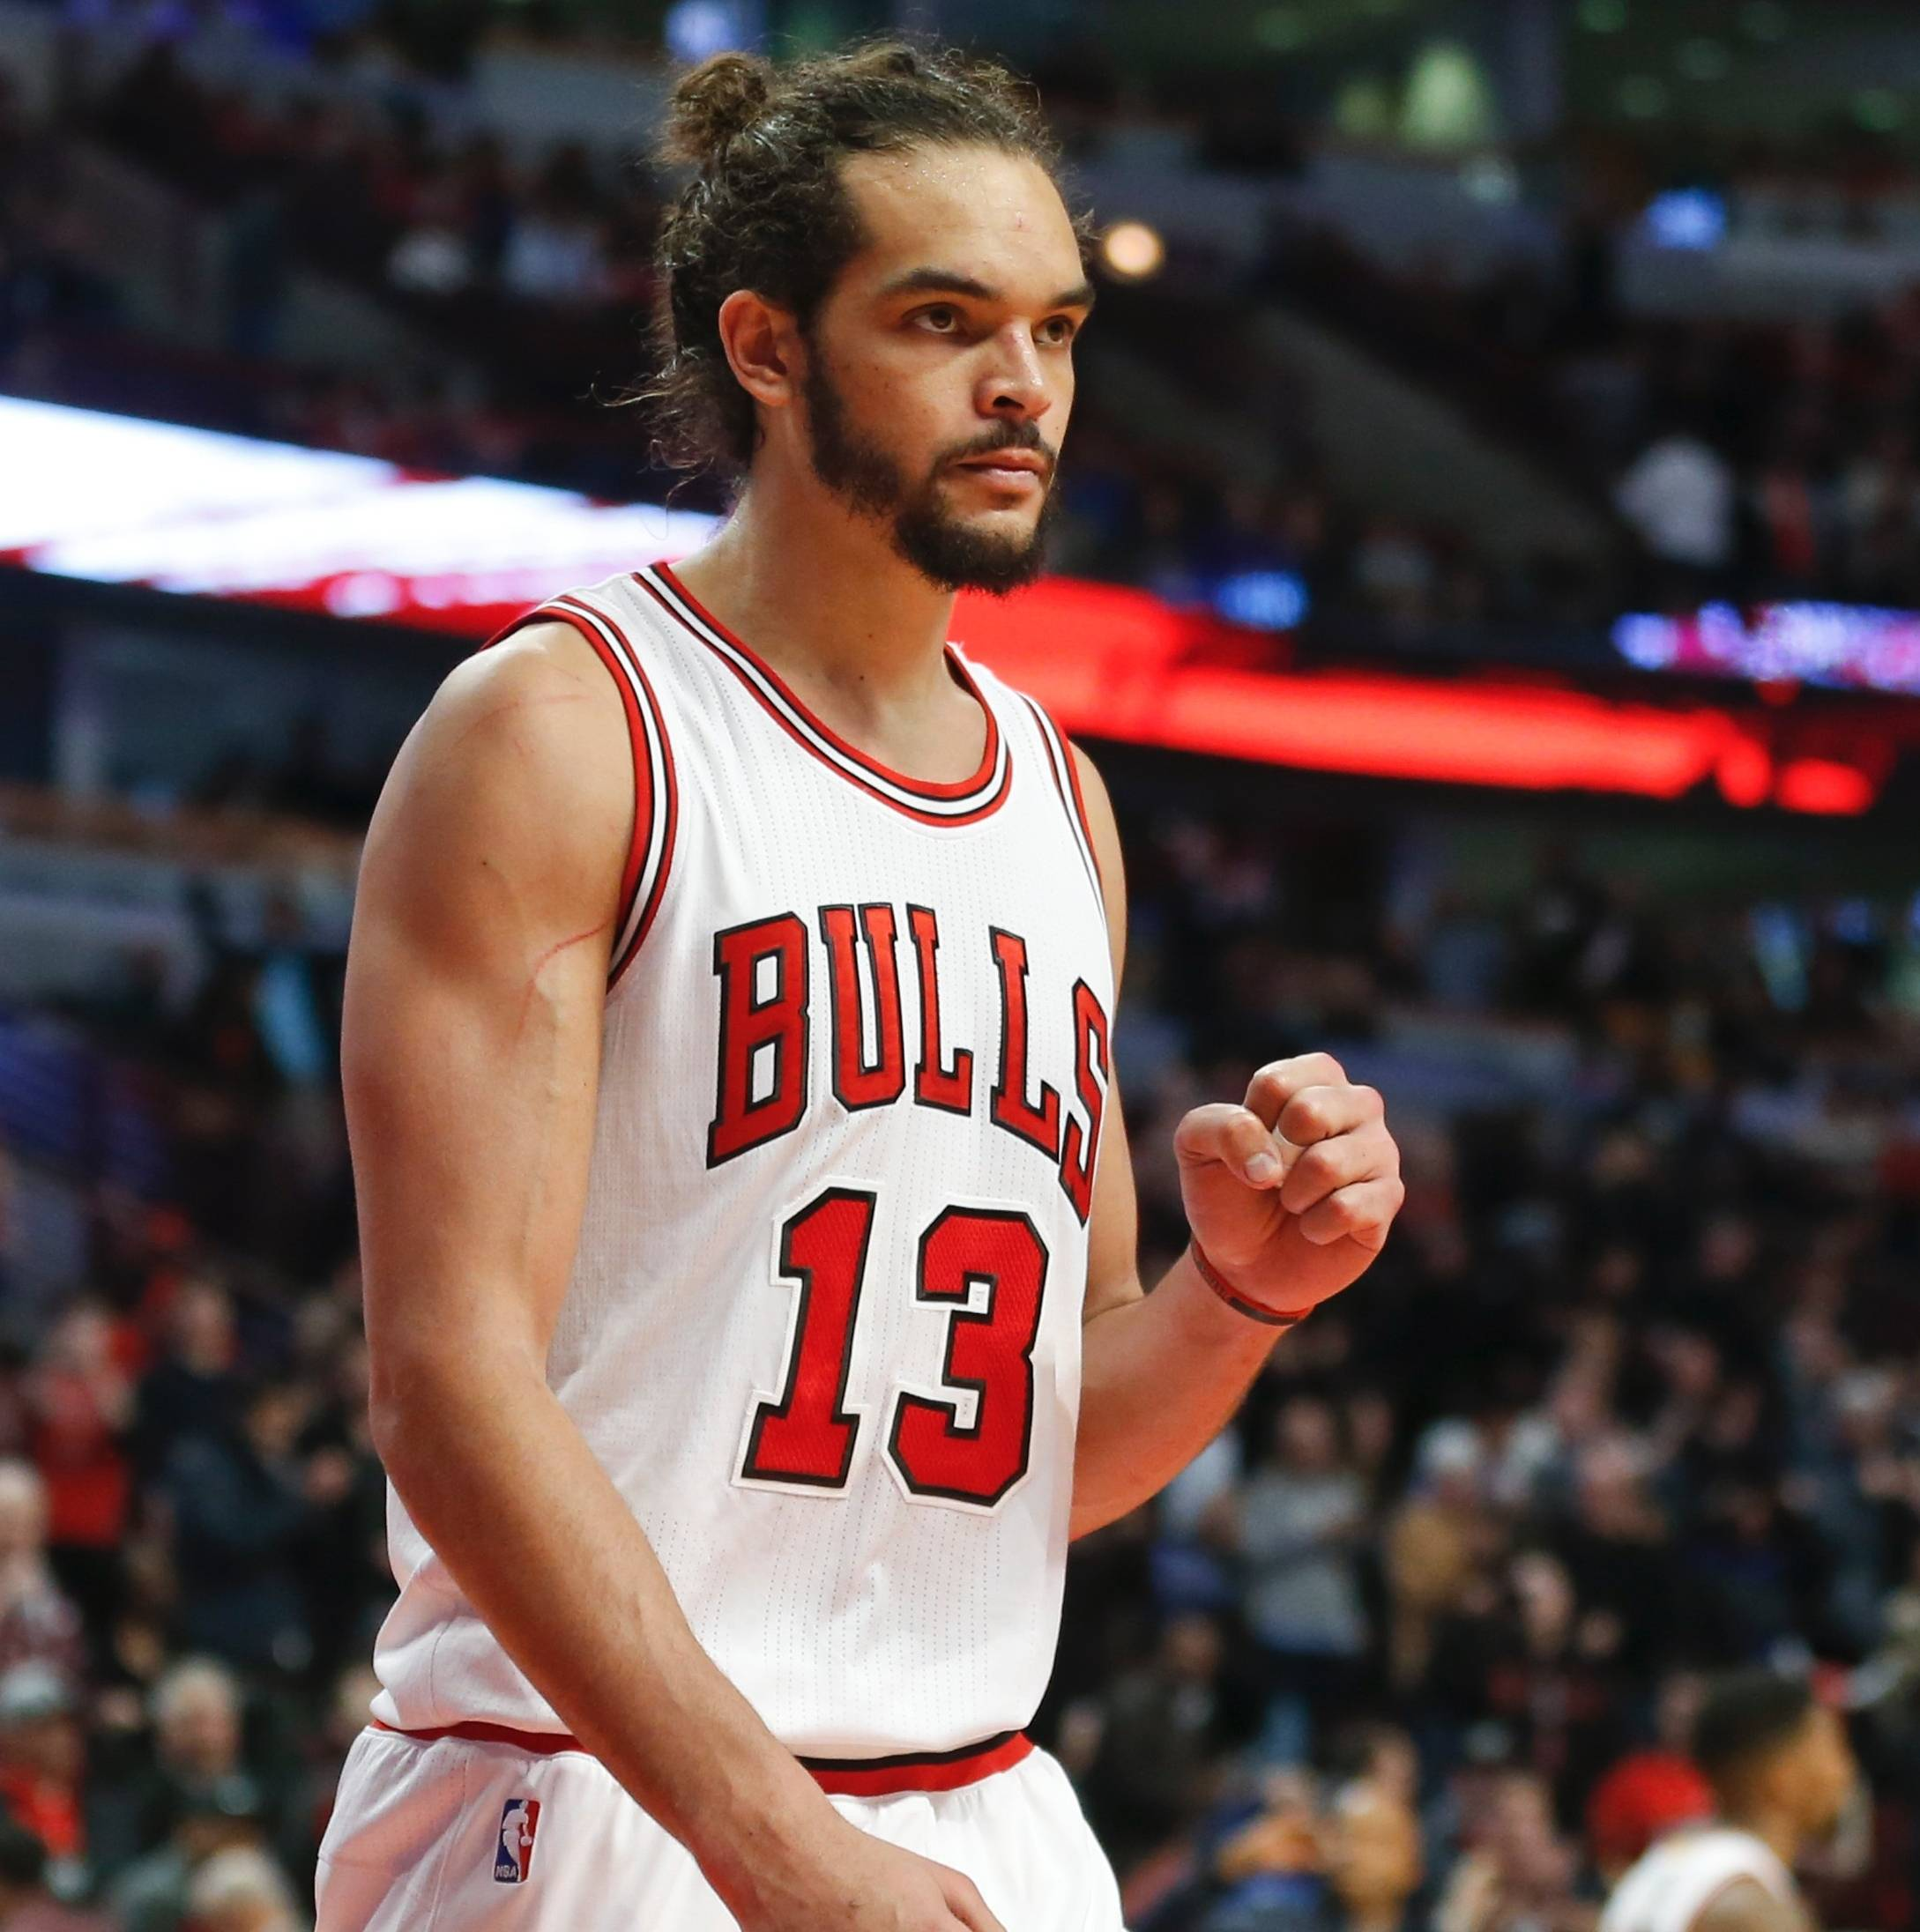 Chicago Bulls center Joakim Noah reacts after the final buzzer of an NBA basketball game against the Washington Wizards, Tuesday, March 3, 2015, in Chicago. The Bulls won 97-92.